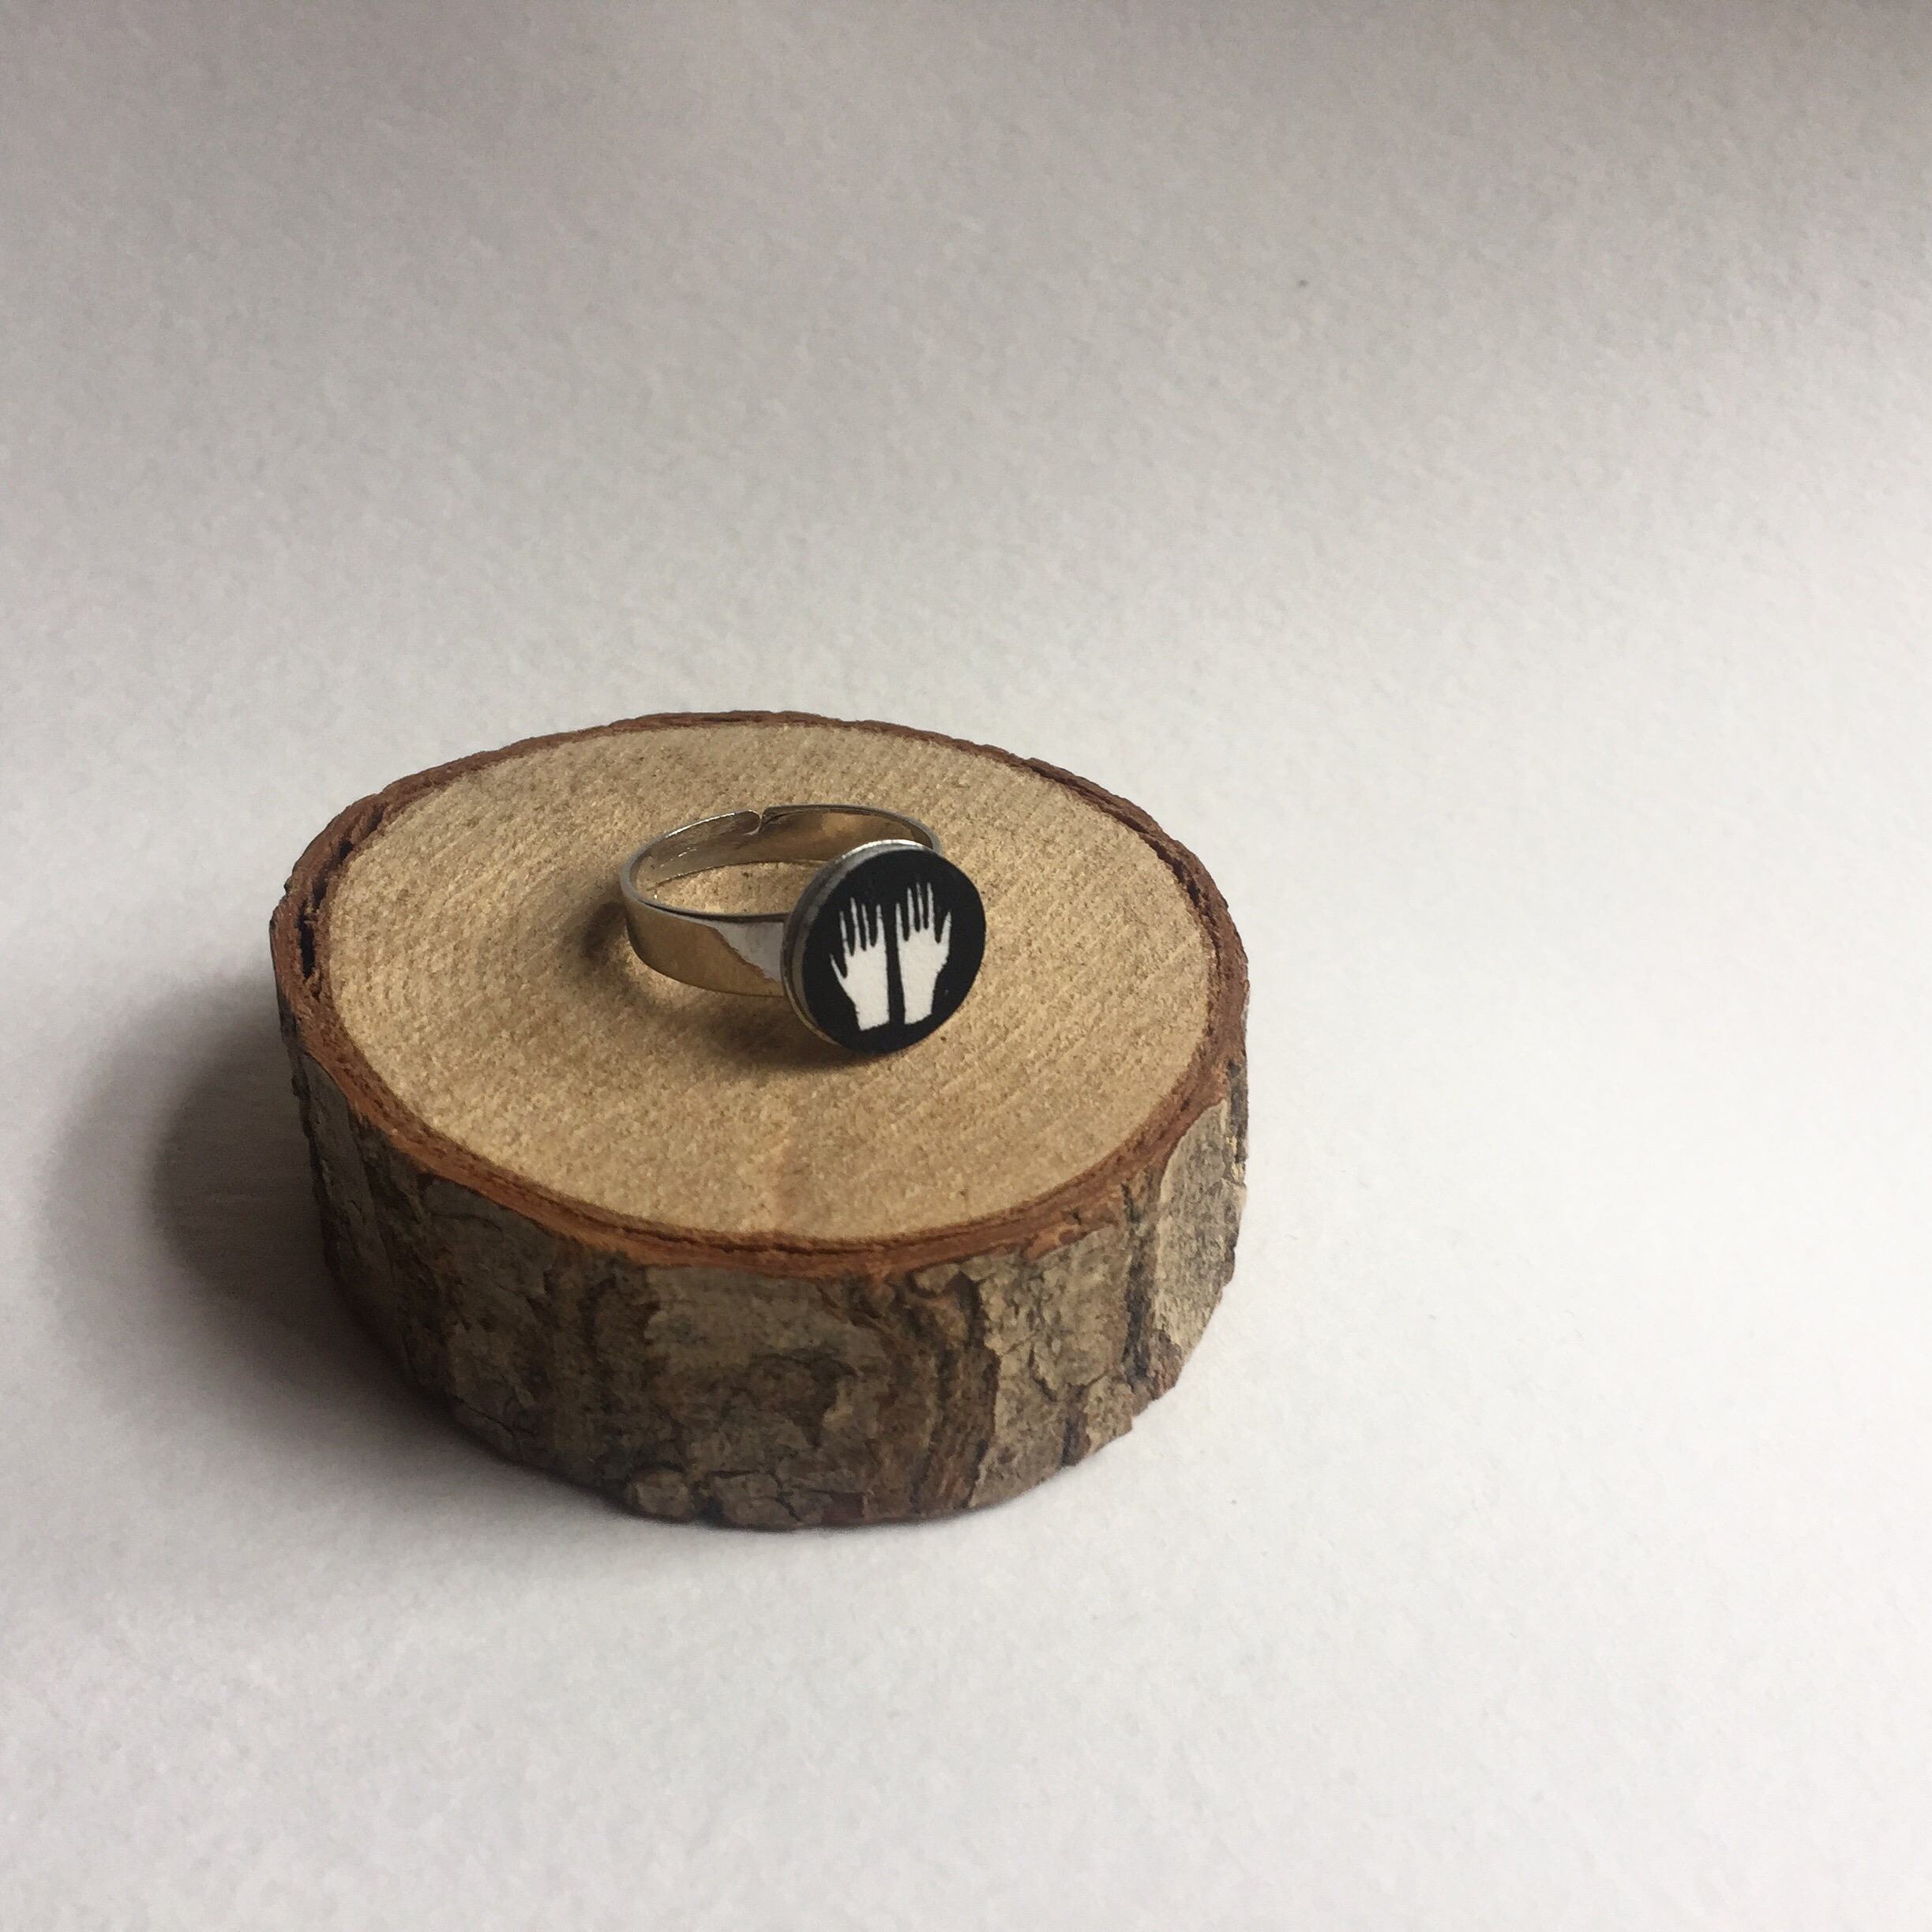 Nicola Boon Hands Illustrated Ring